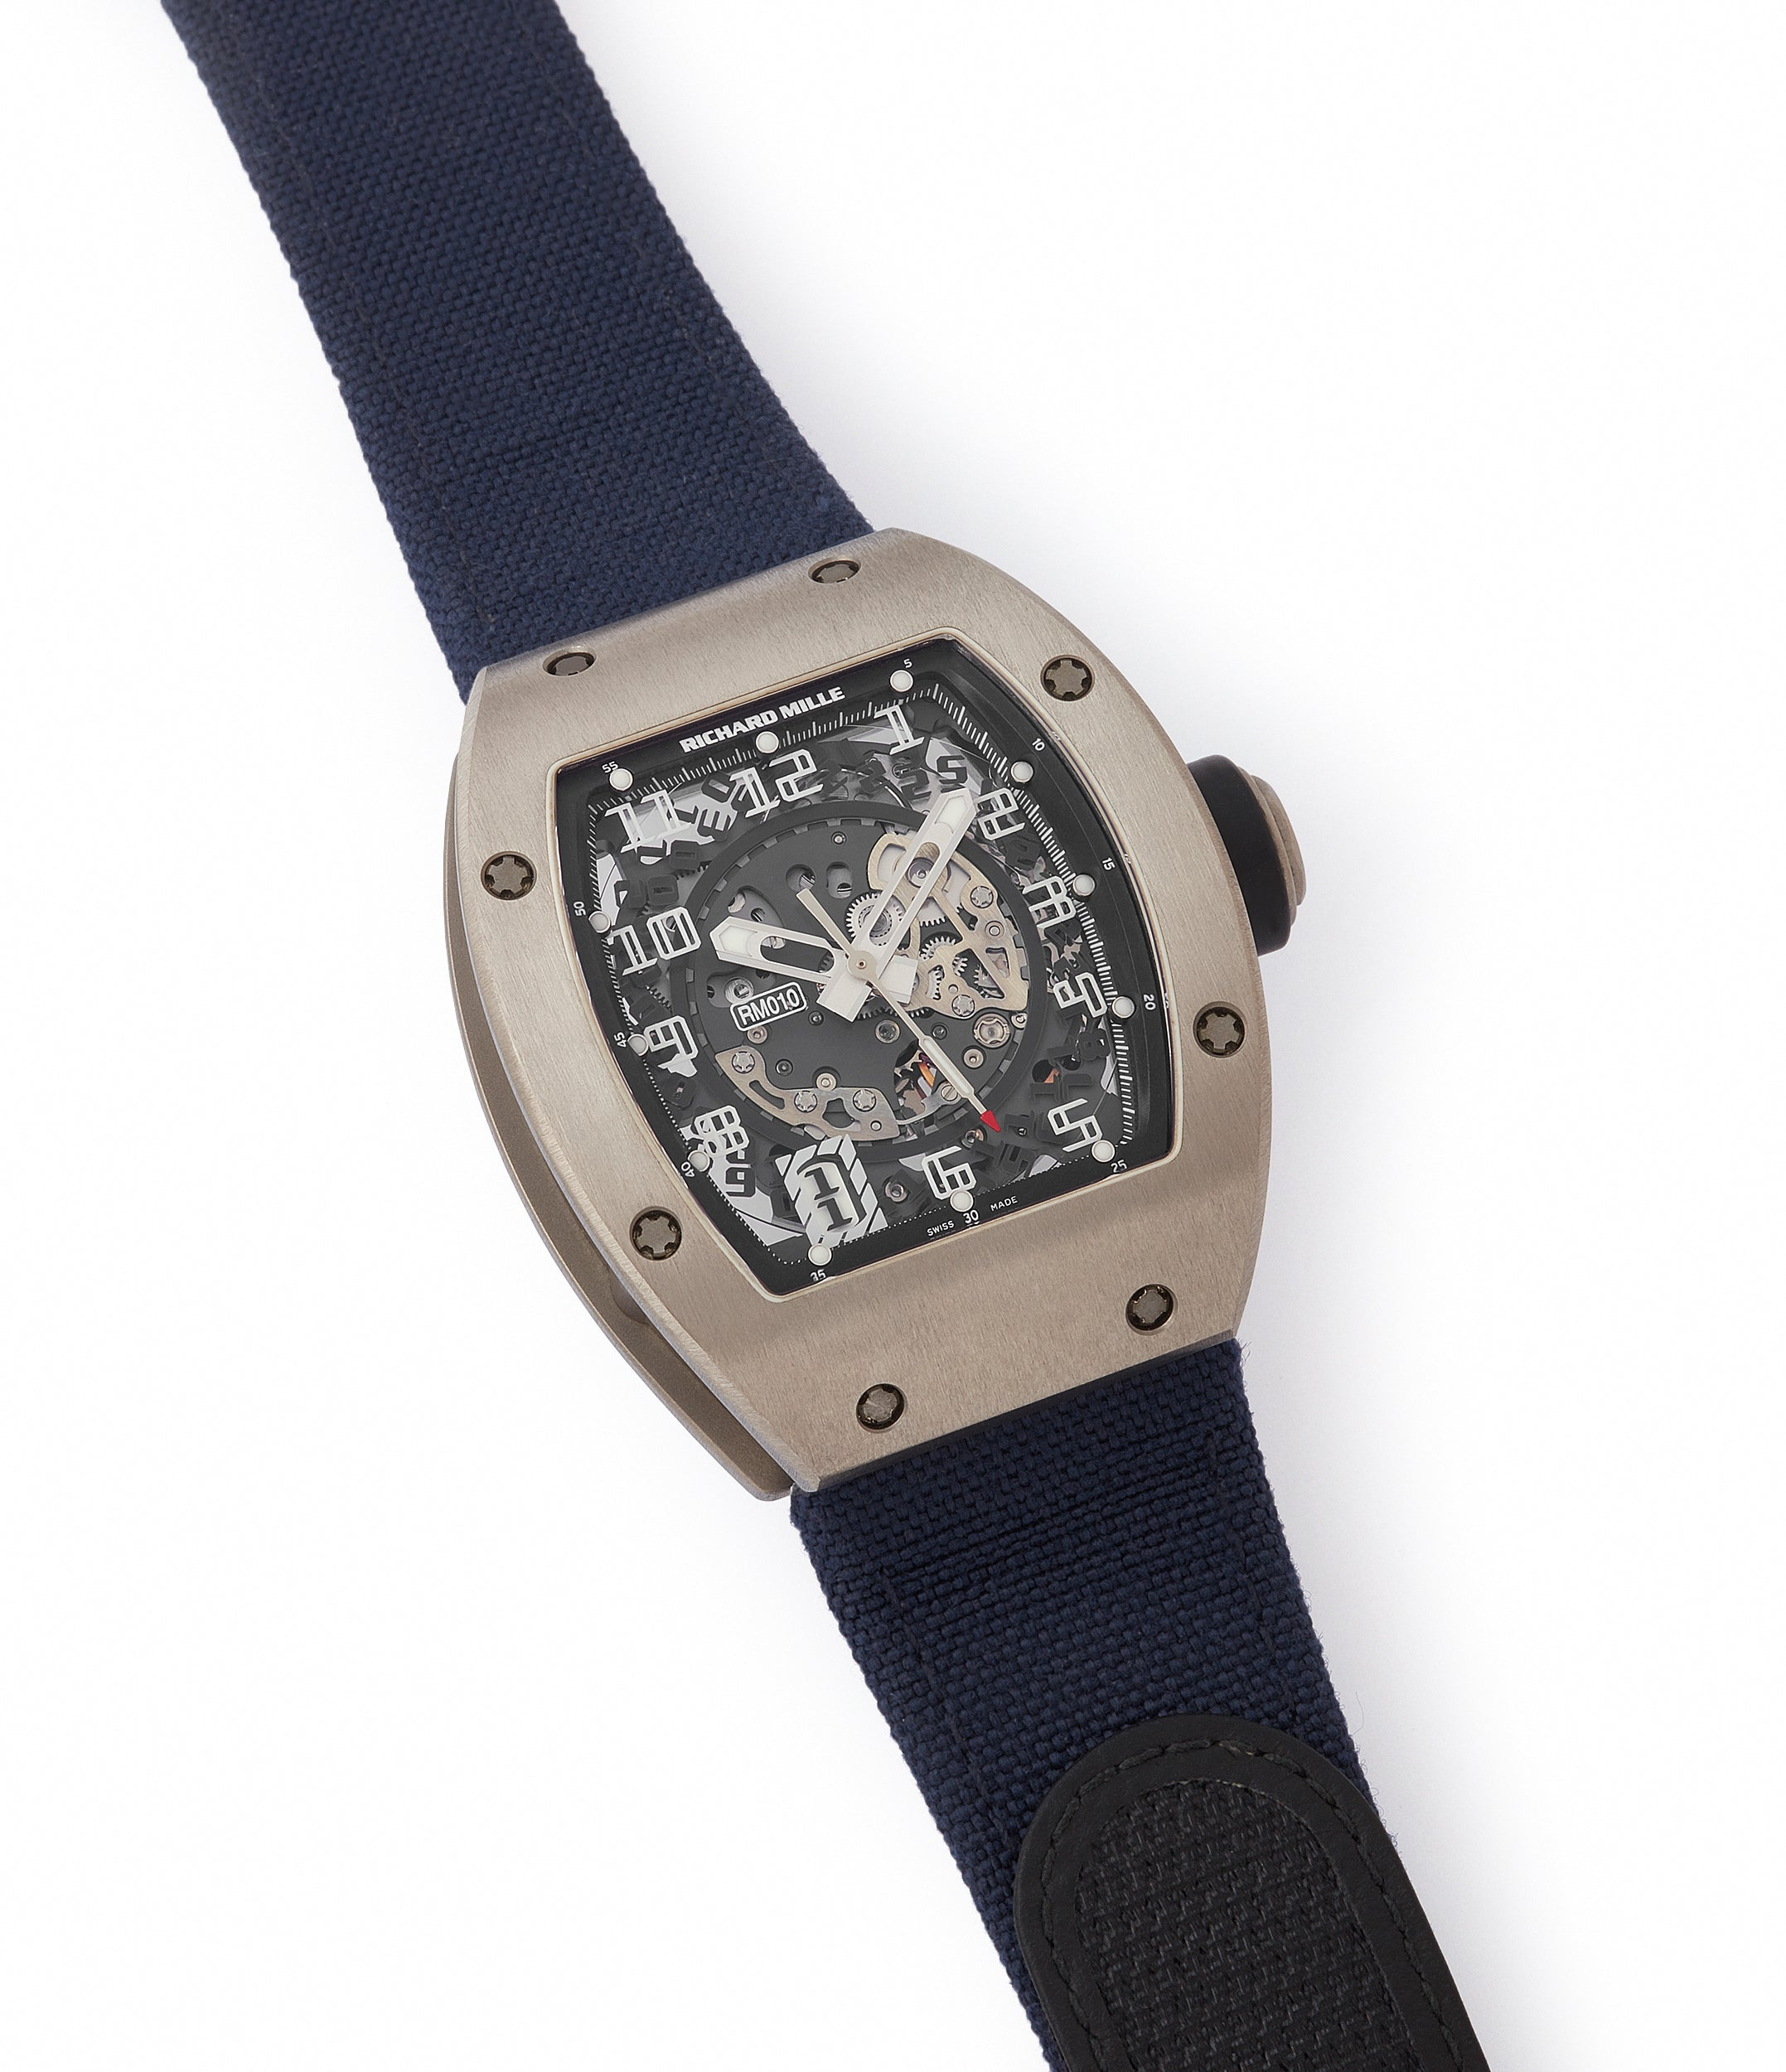 selling Richard Mille RM010 titanium rare luxury sport watch by independent watchmaker for sale online at A Collected Man London UK specialist of rare watches